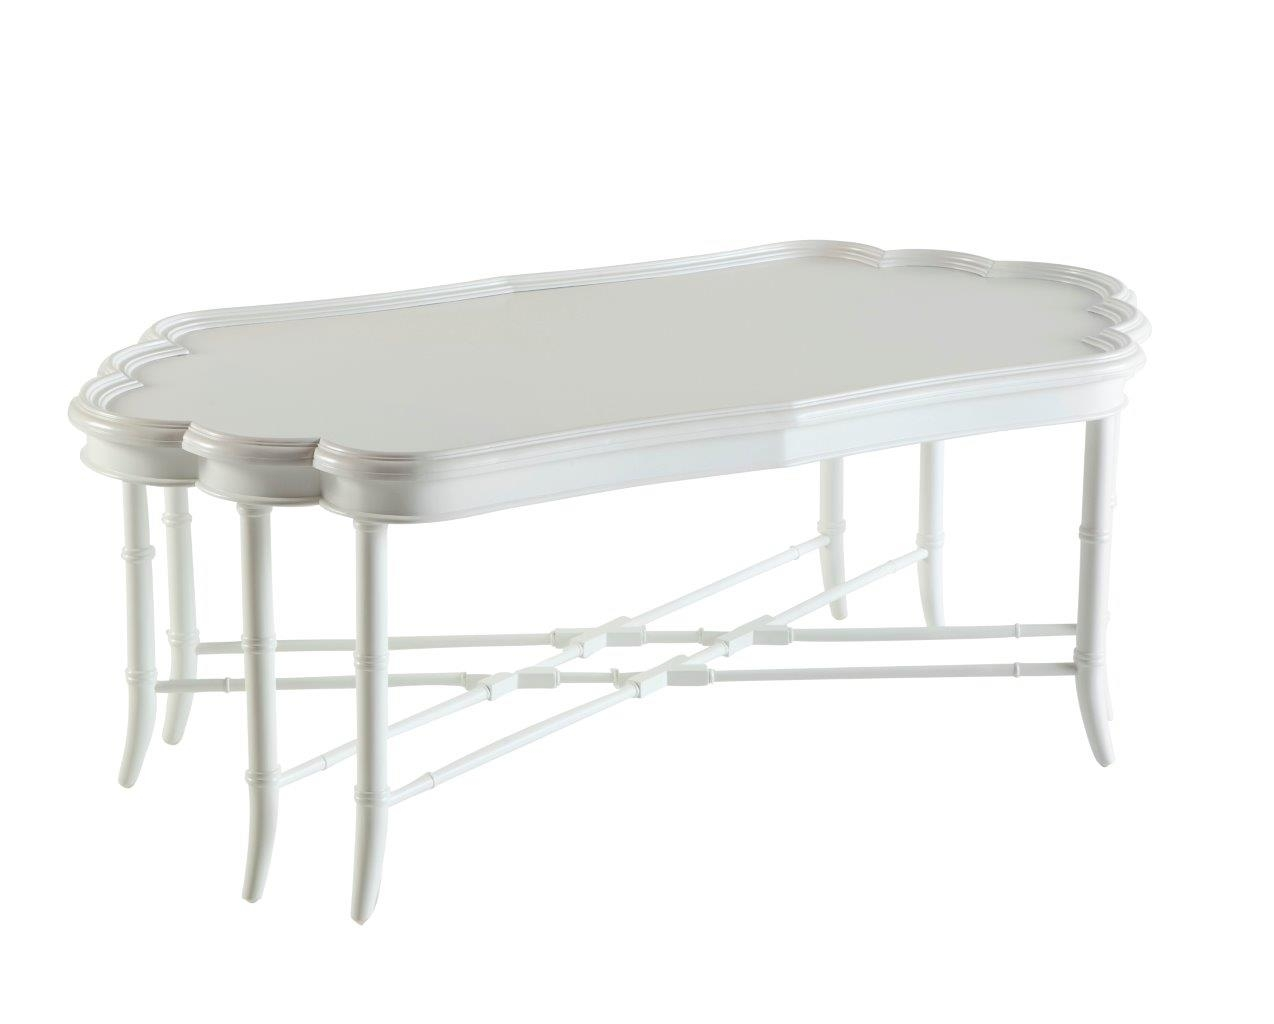 Coffee Tables-Xavier Furniture - Hamptons Style, Modern Elegance pertaining to Mill Large Coffee Tables (Image 6 of 30)